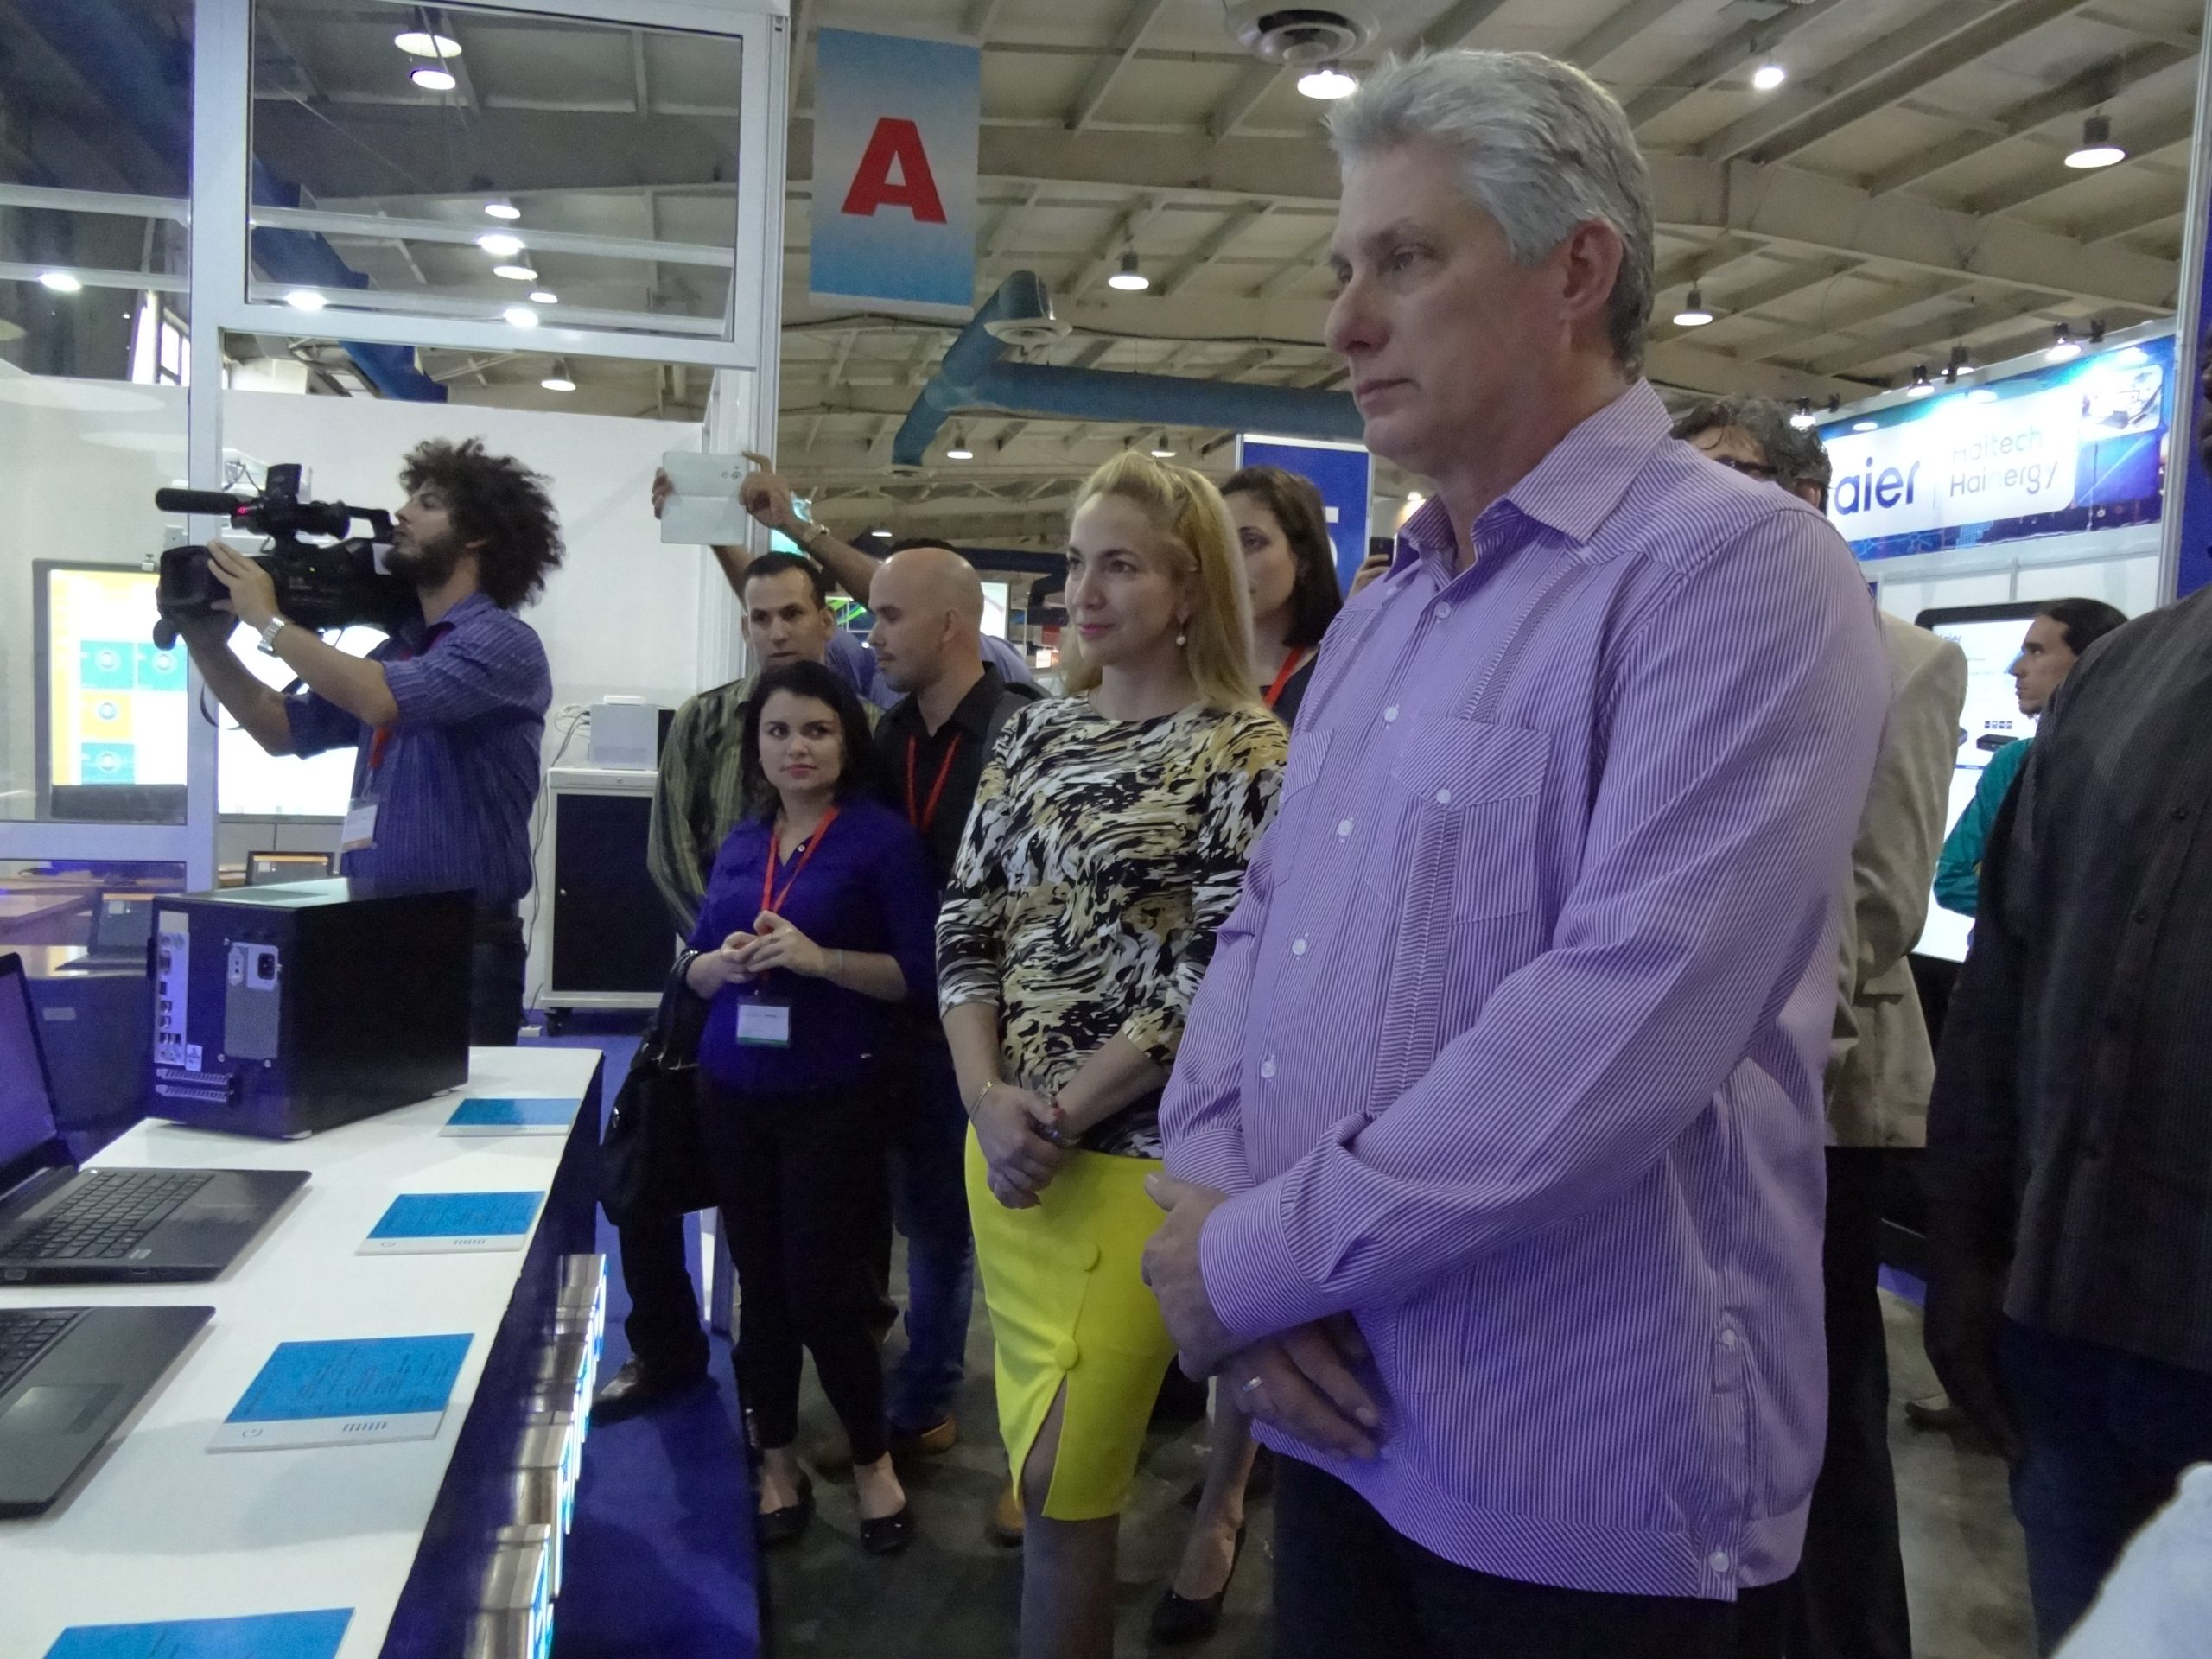 2018 Miguel Diaz-Canel, President of the Republic of Cuba, visits the Fair